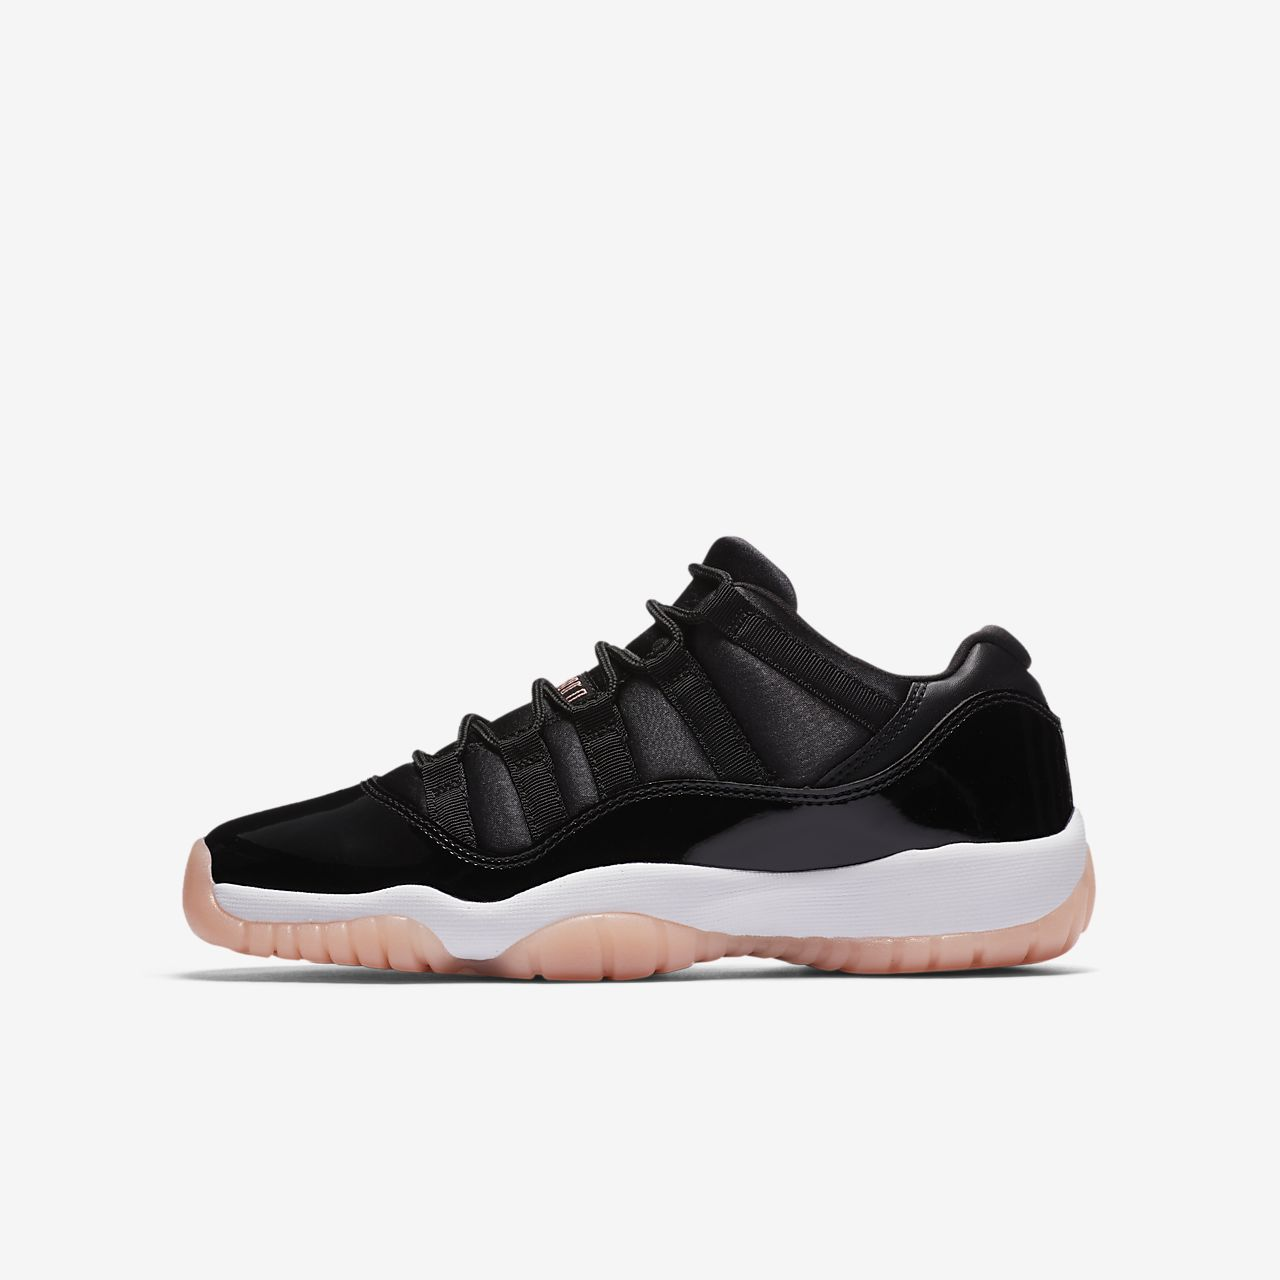 big kids jordan 11 shoes